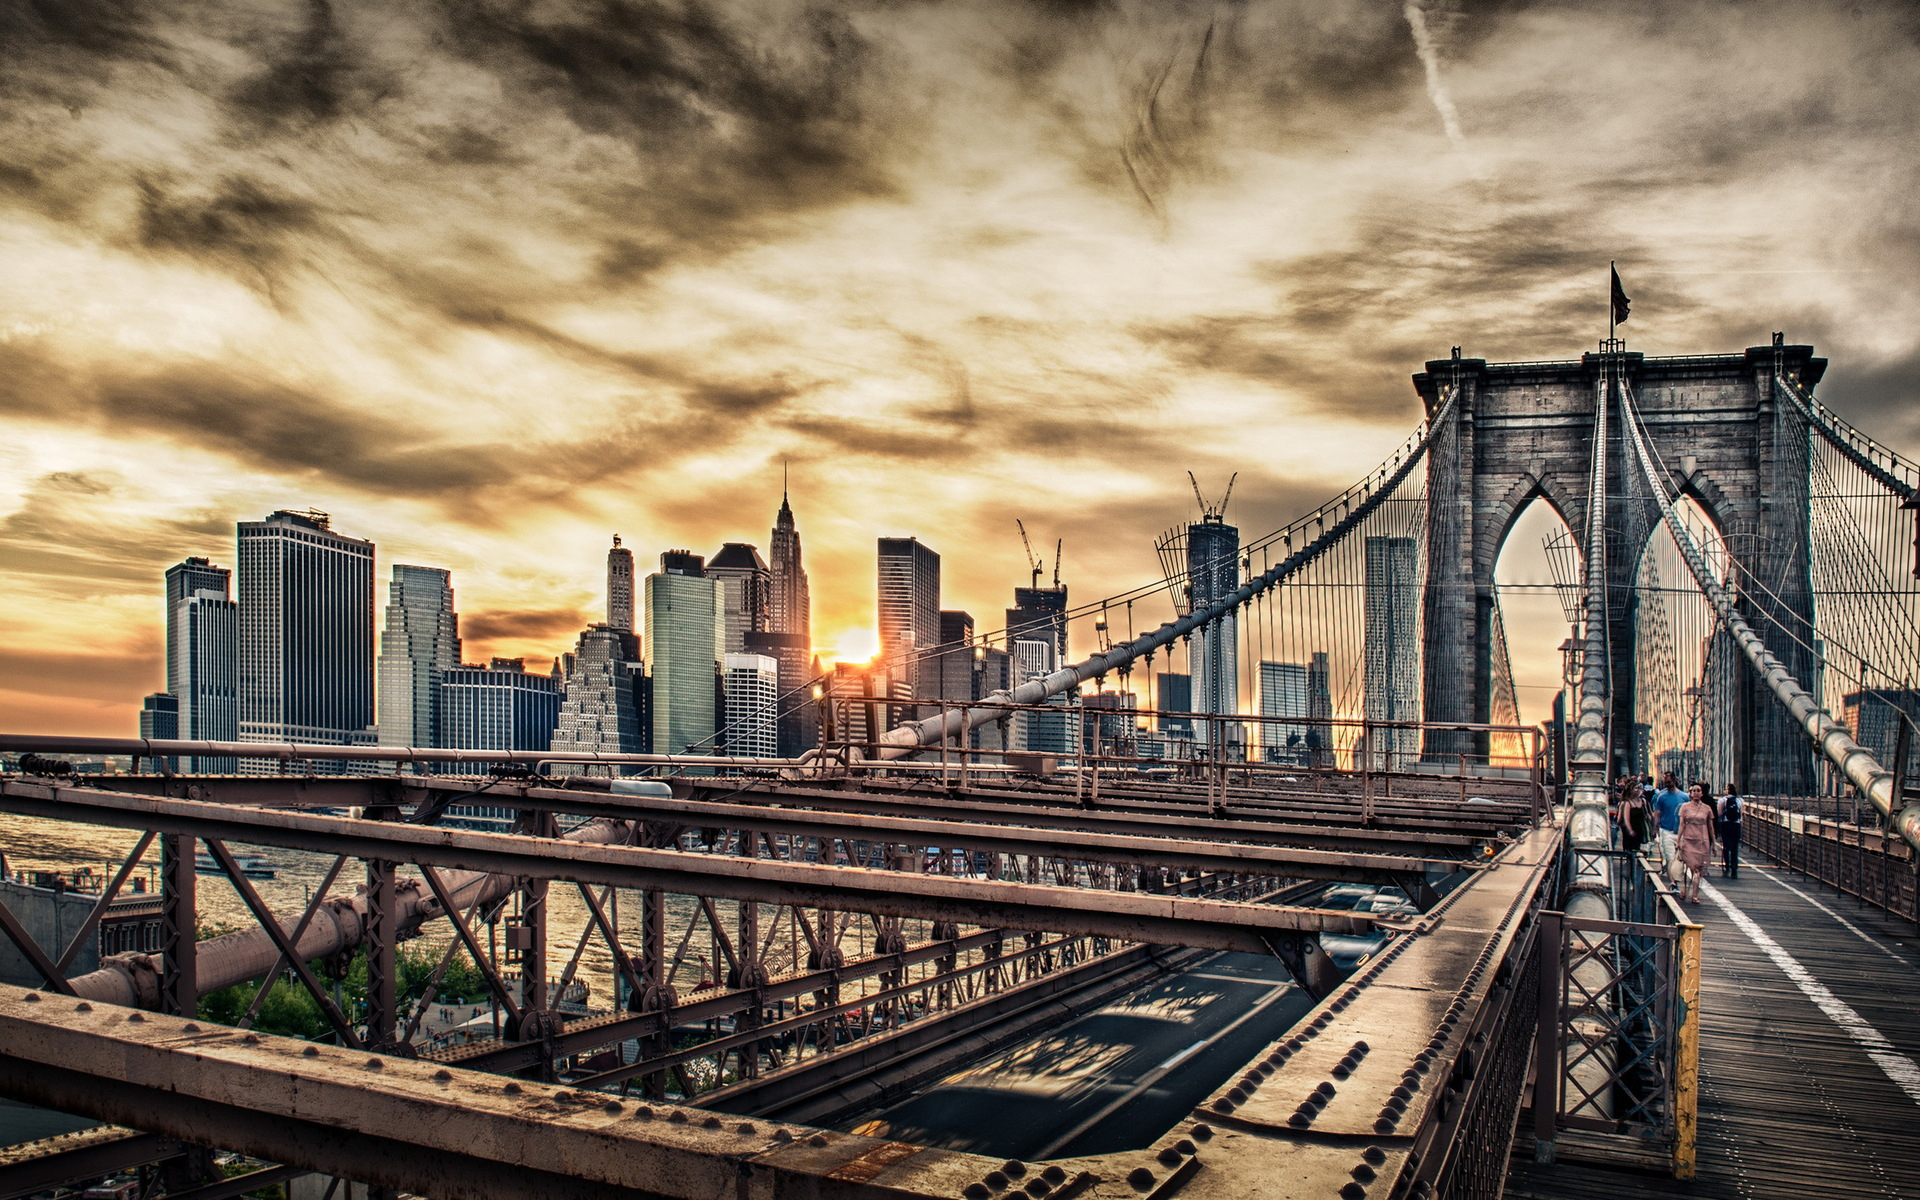 Man Made - Brooklyn Bridge Wallpaper